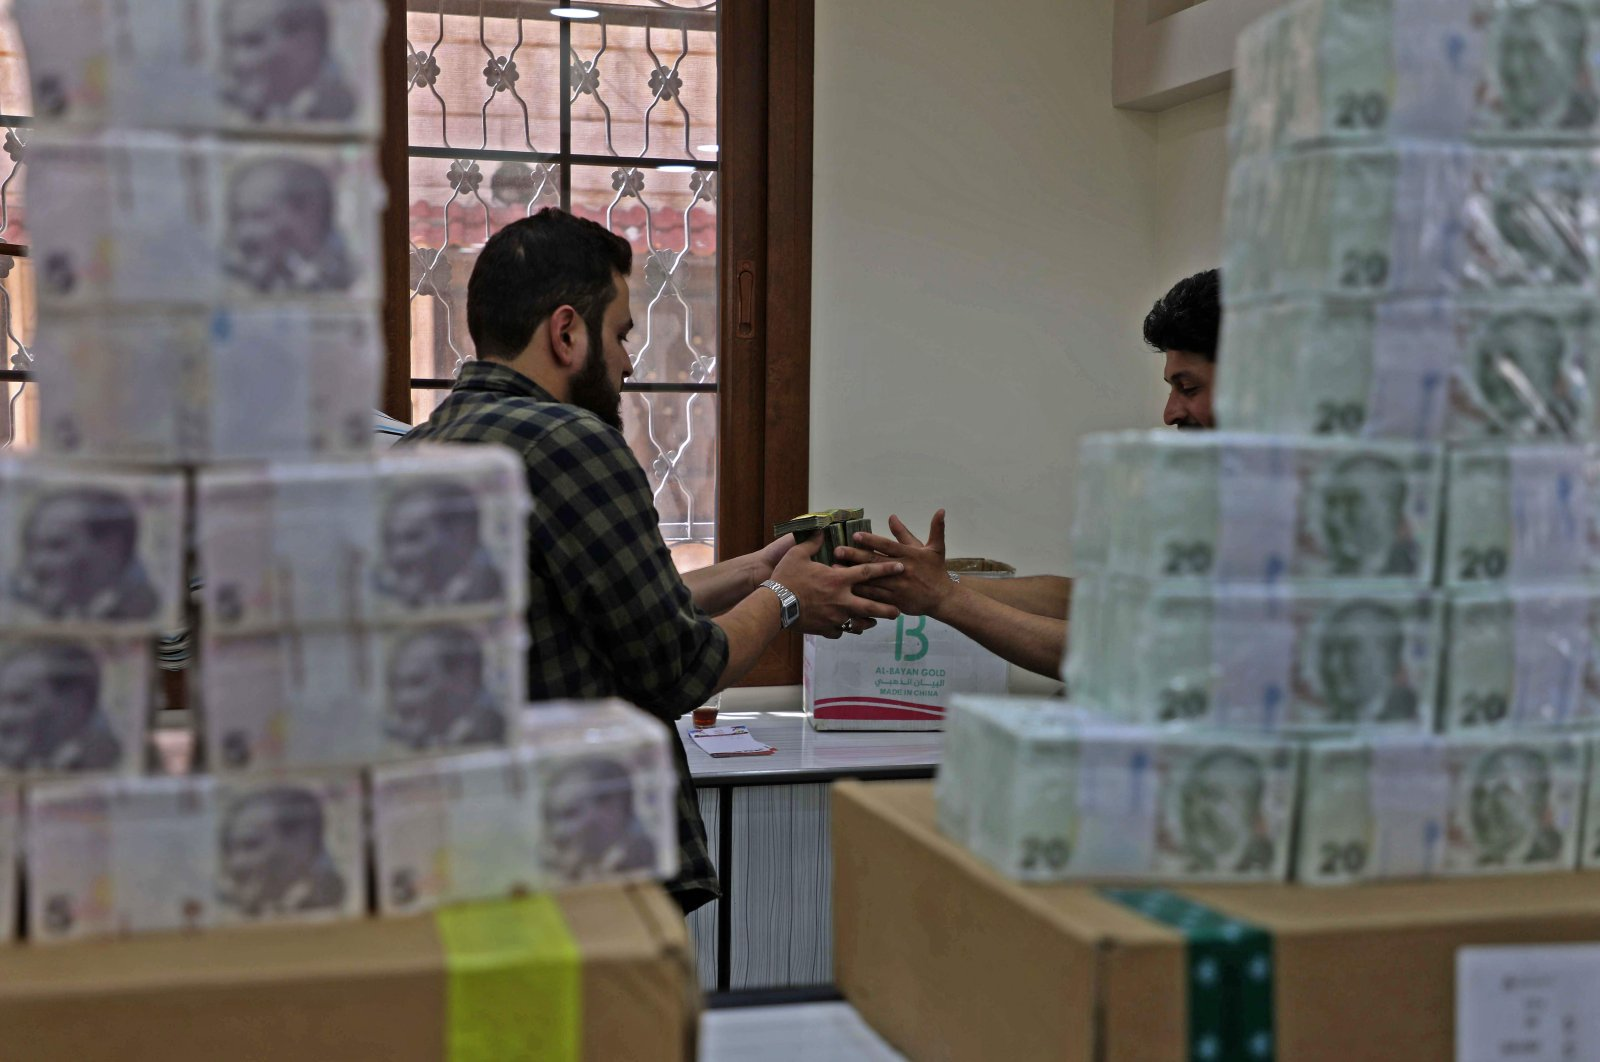 Employees sort Turkish lira banknotes at a bank in the town of Sarmada in Syria's northwestern Idlib province, June 14, 2020. (AFP Photo)